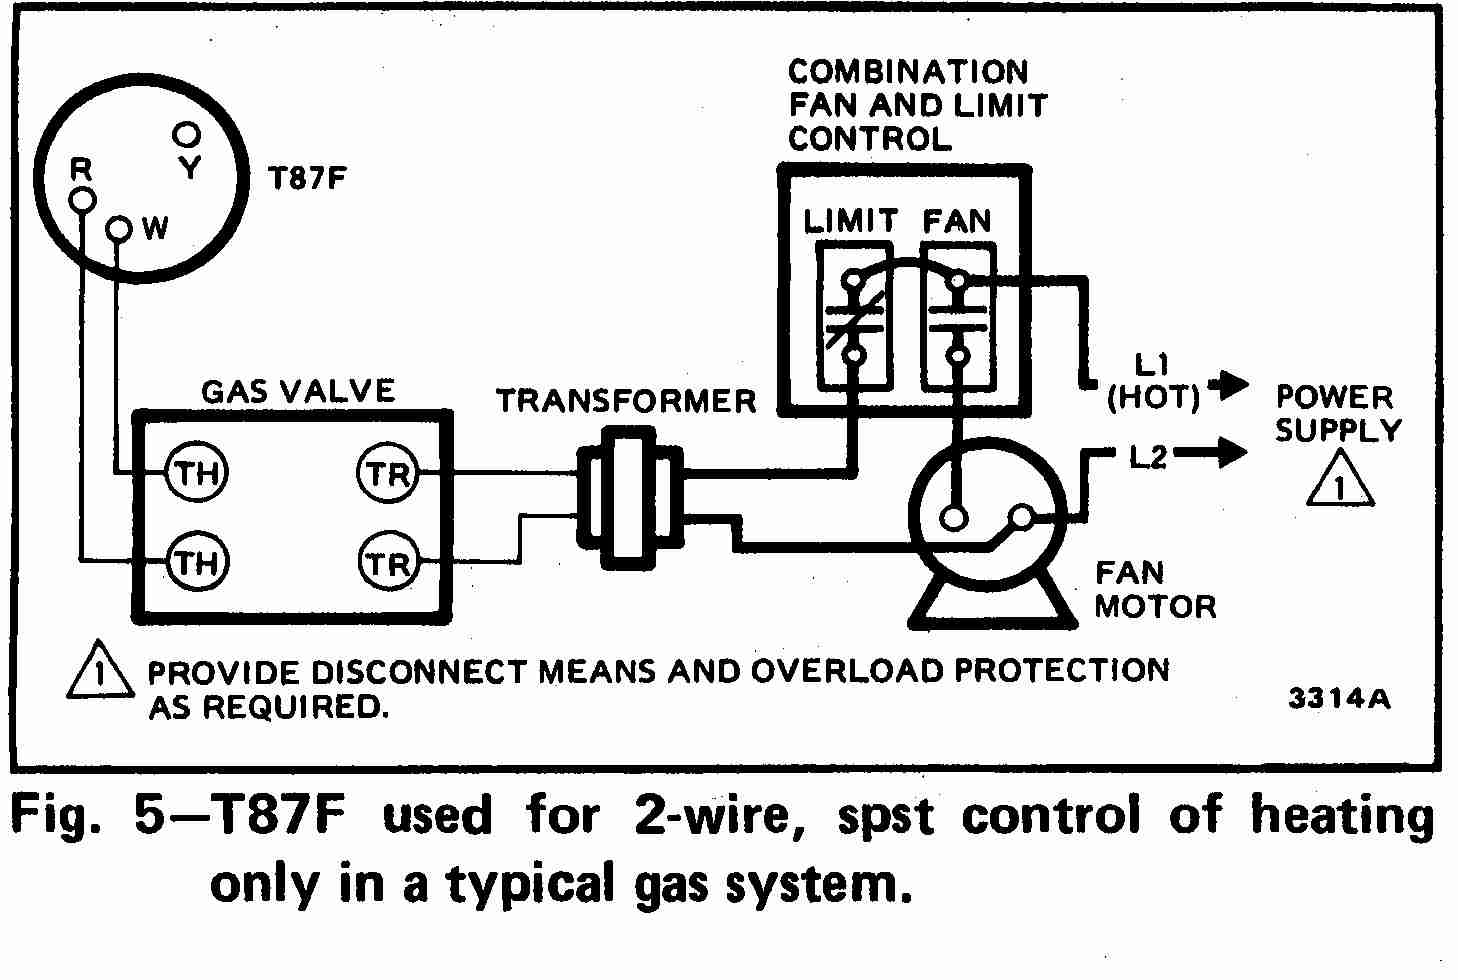 TT_T87F_0002_2Wg_DJF zone valve wiring installation & instructions guide to heating thermostat wiring diagram at fashall.co